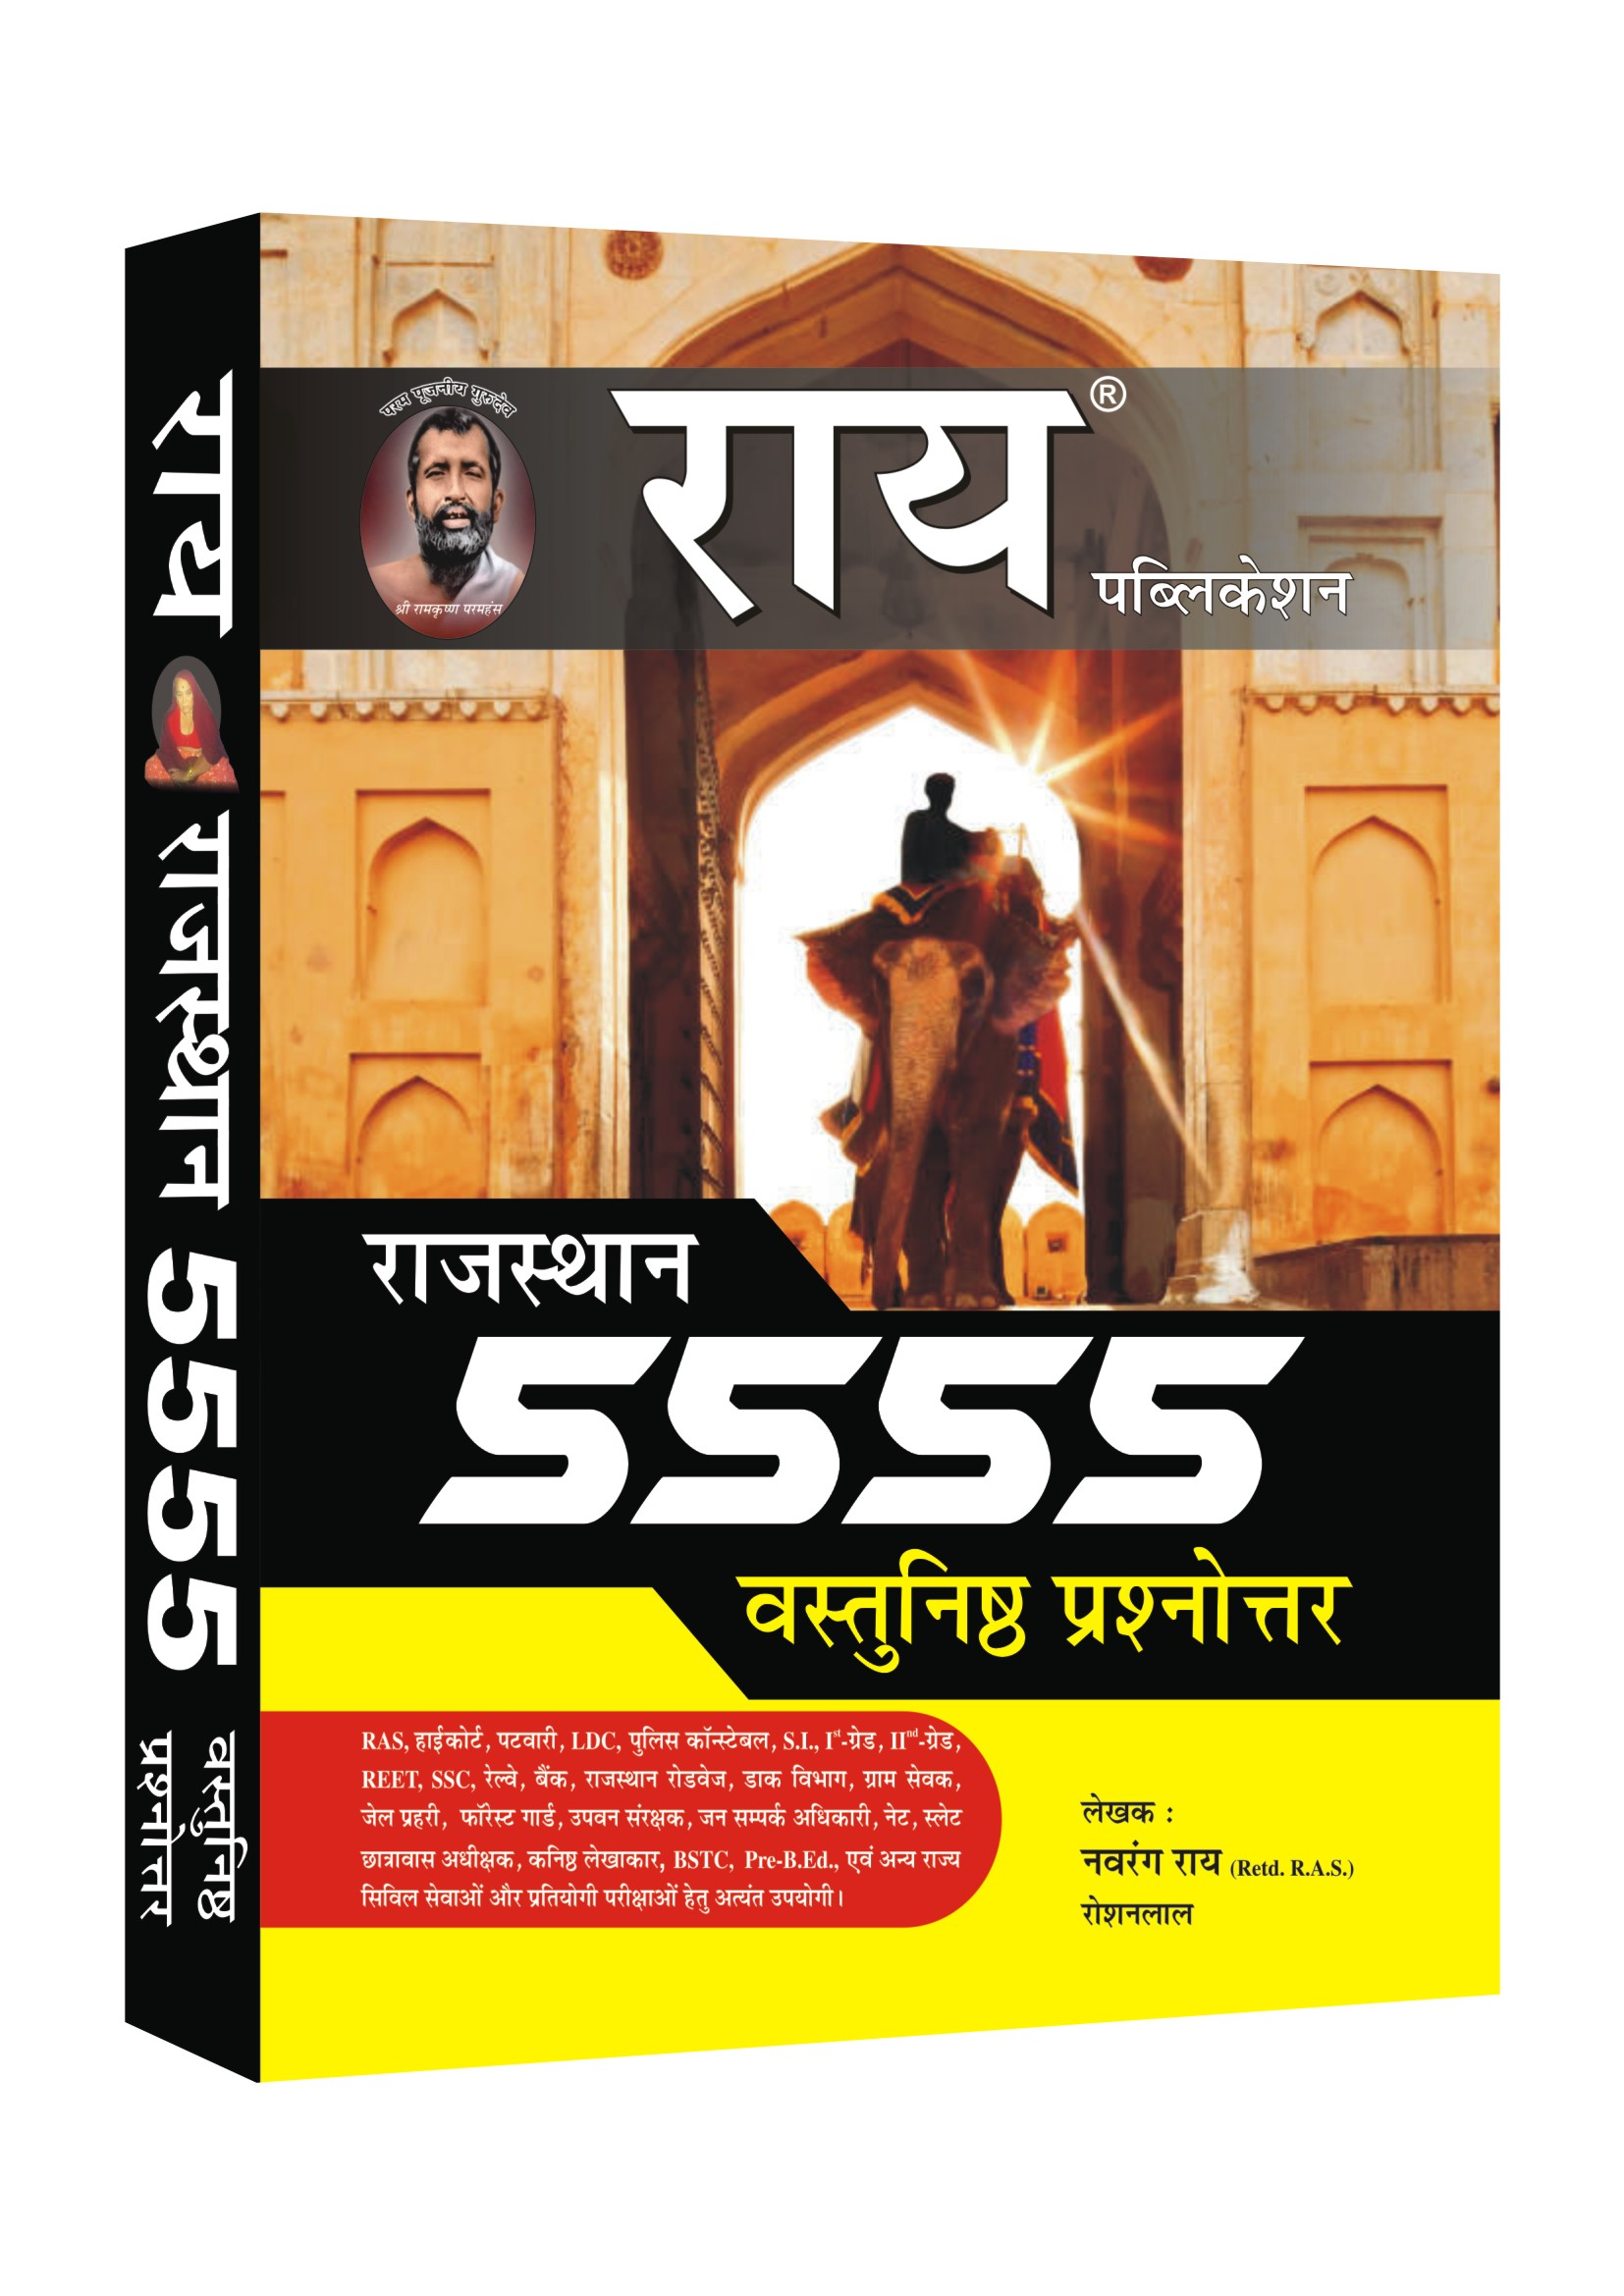 Rajasthan Samanya Gyan Objective Book ( 5555 vastunishth  Questions) ( Rajasthan G.K. 7 Model papers included )